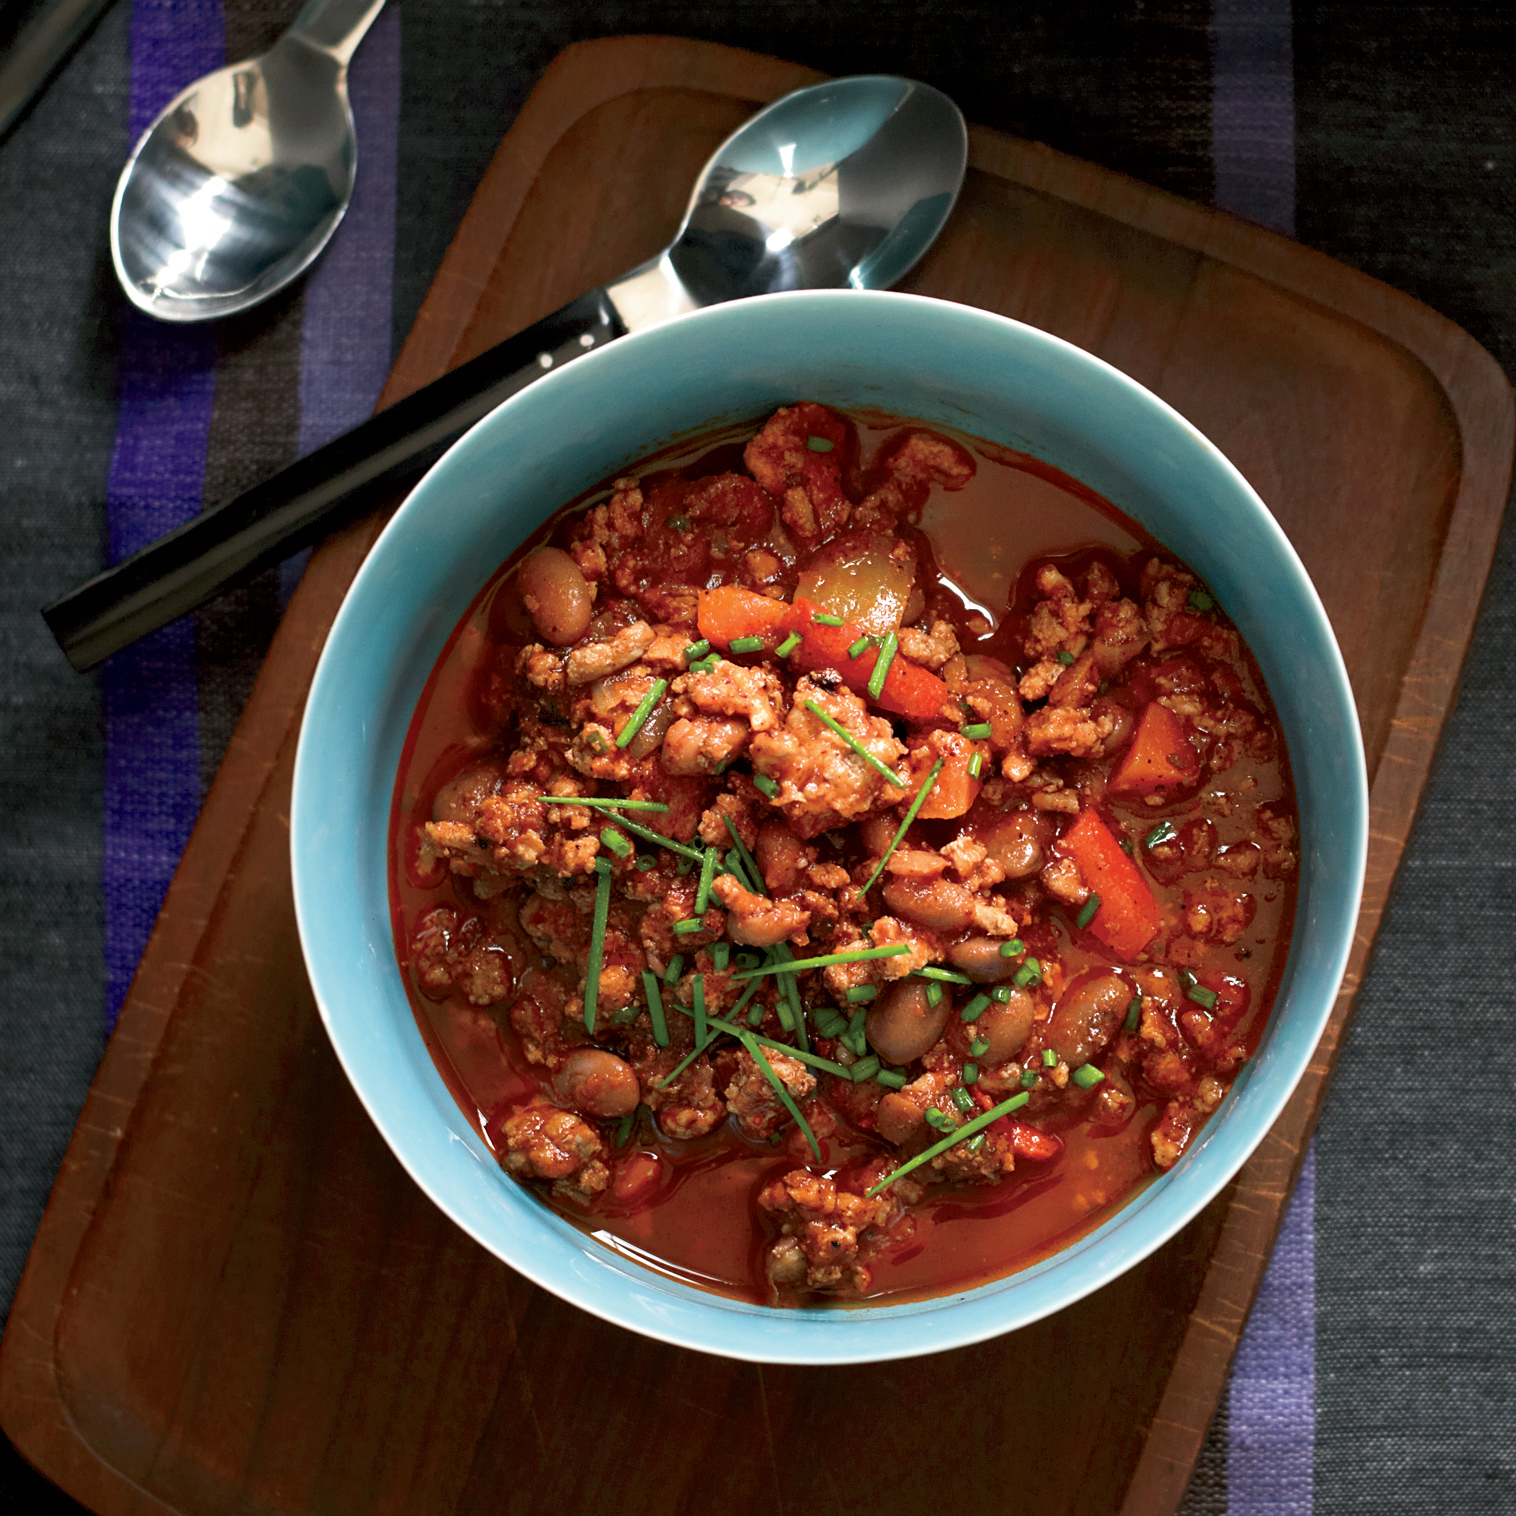 images-sys-201202-r-turkey-and-pinto-bean-chili.jpg